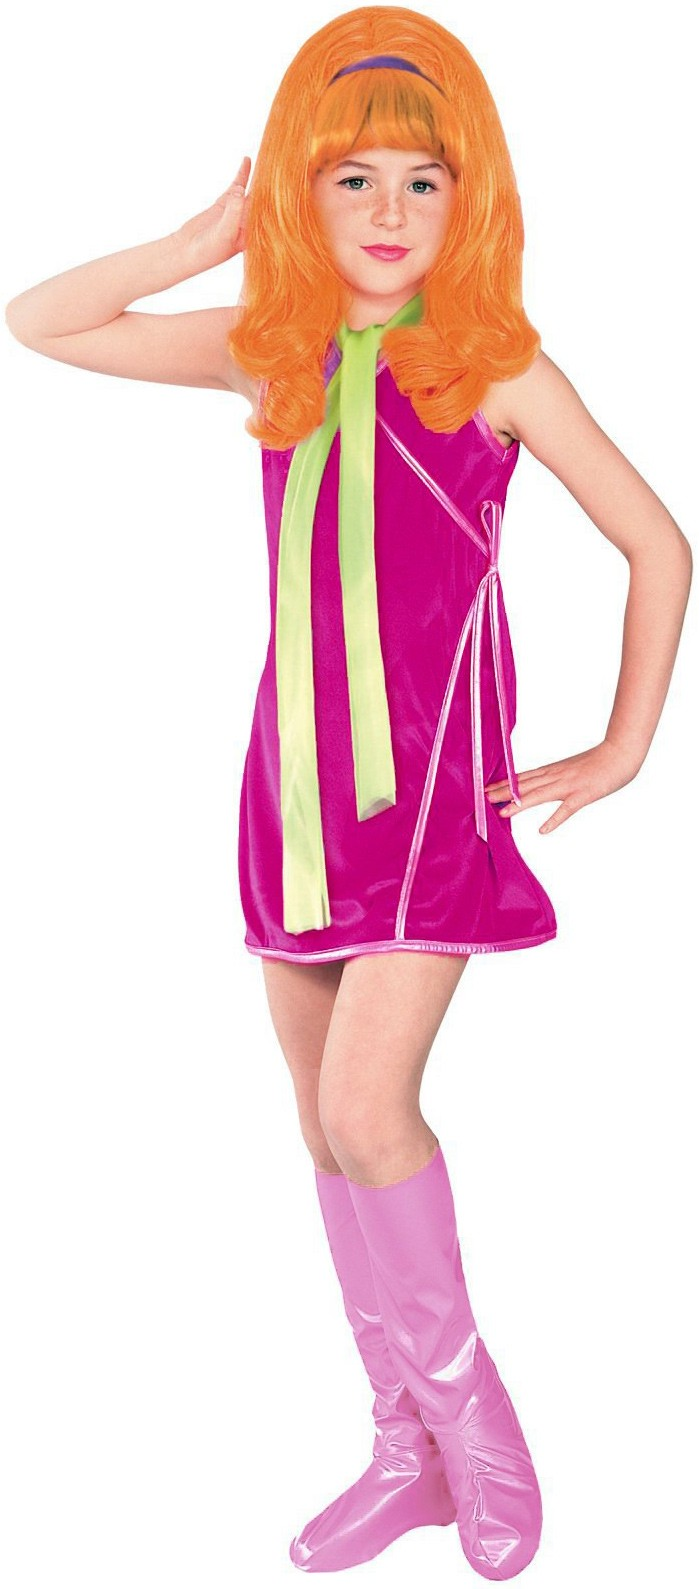 Scooby-Doo Daphne Costume Adult Women/'s Halloween Fancy Dress Licensed Outfit